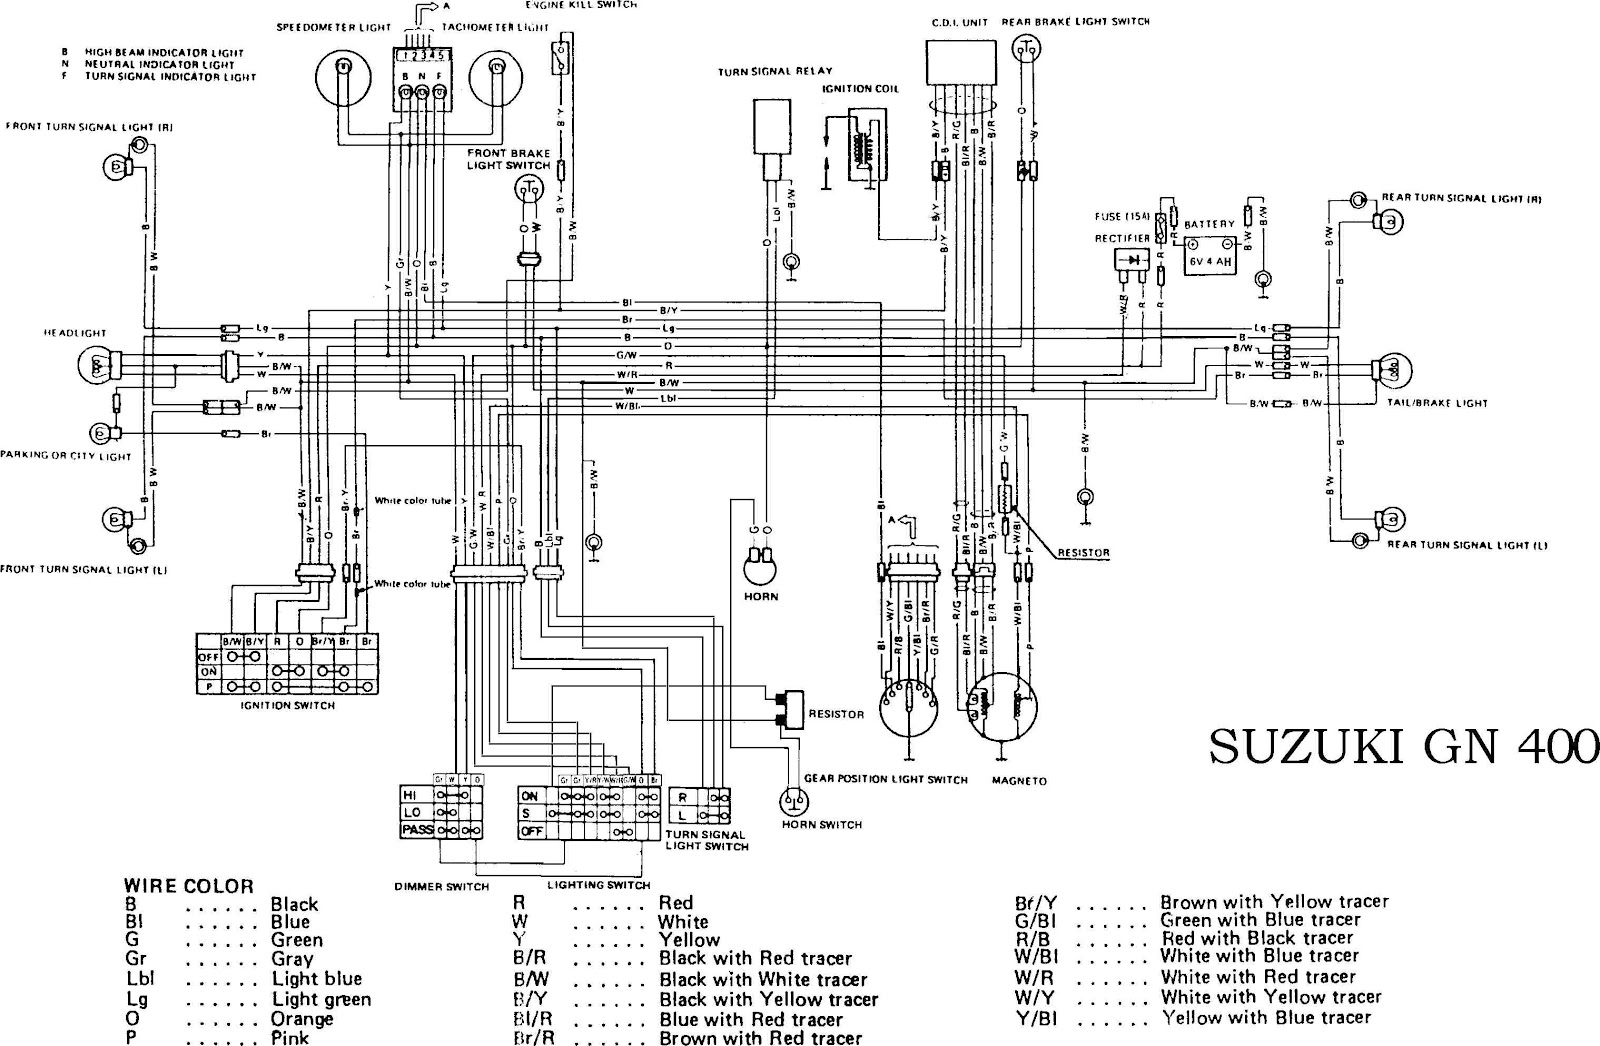 suzuki wiring diagram motorcycle ford f150 stereo gn400 complete electrical